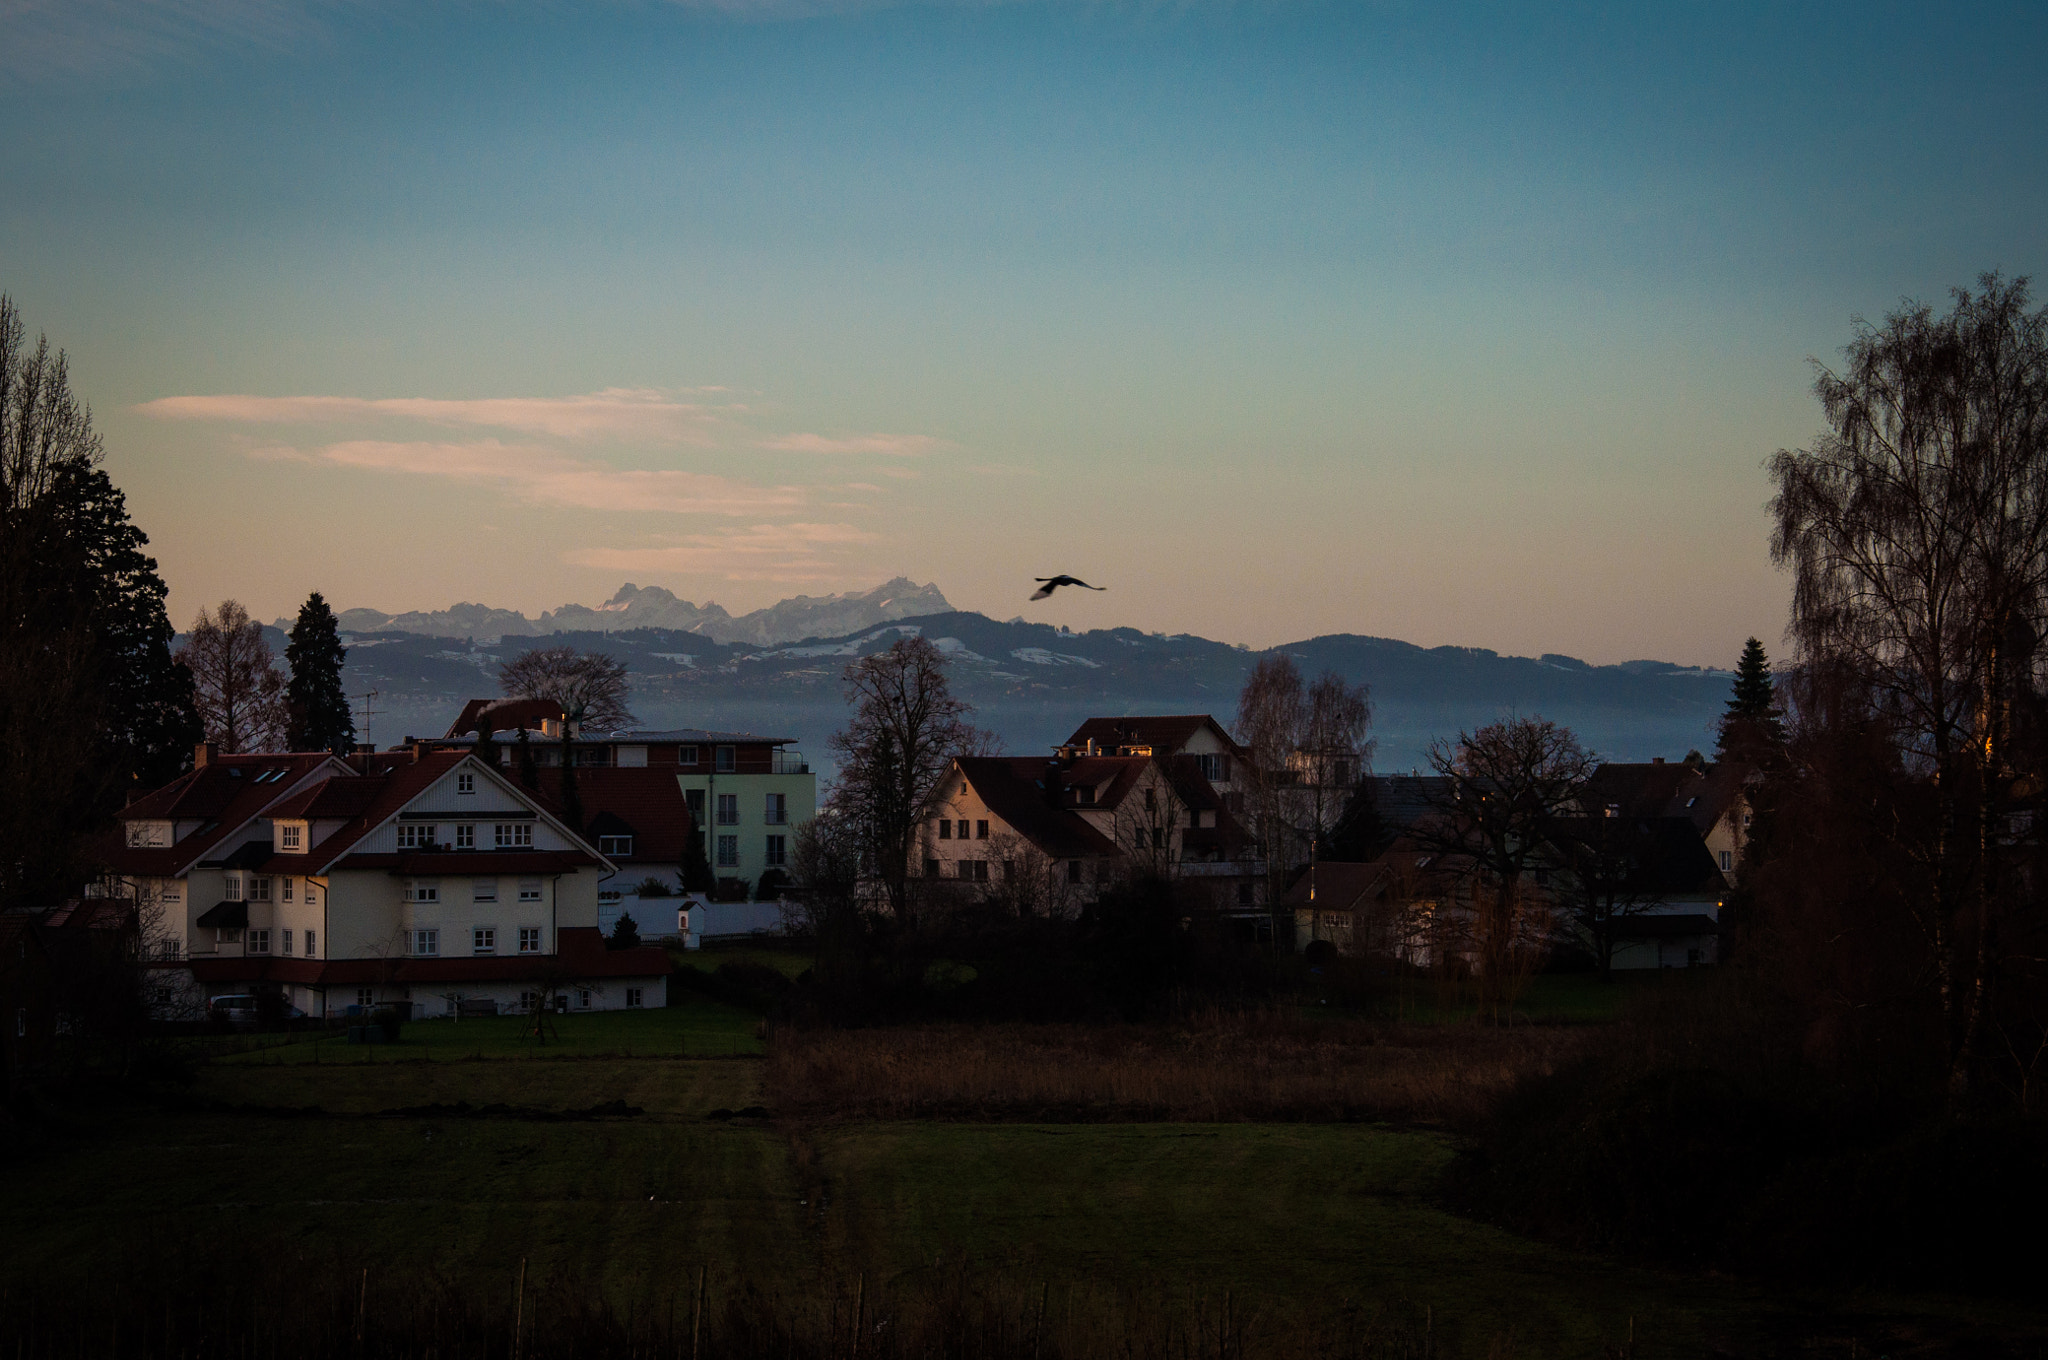 Photograph Nonnenhorn Abendstimmung by Philipp Mayinger on 500px